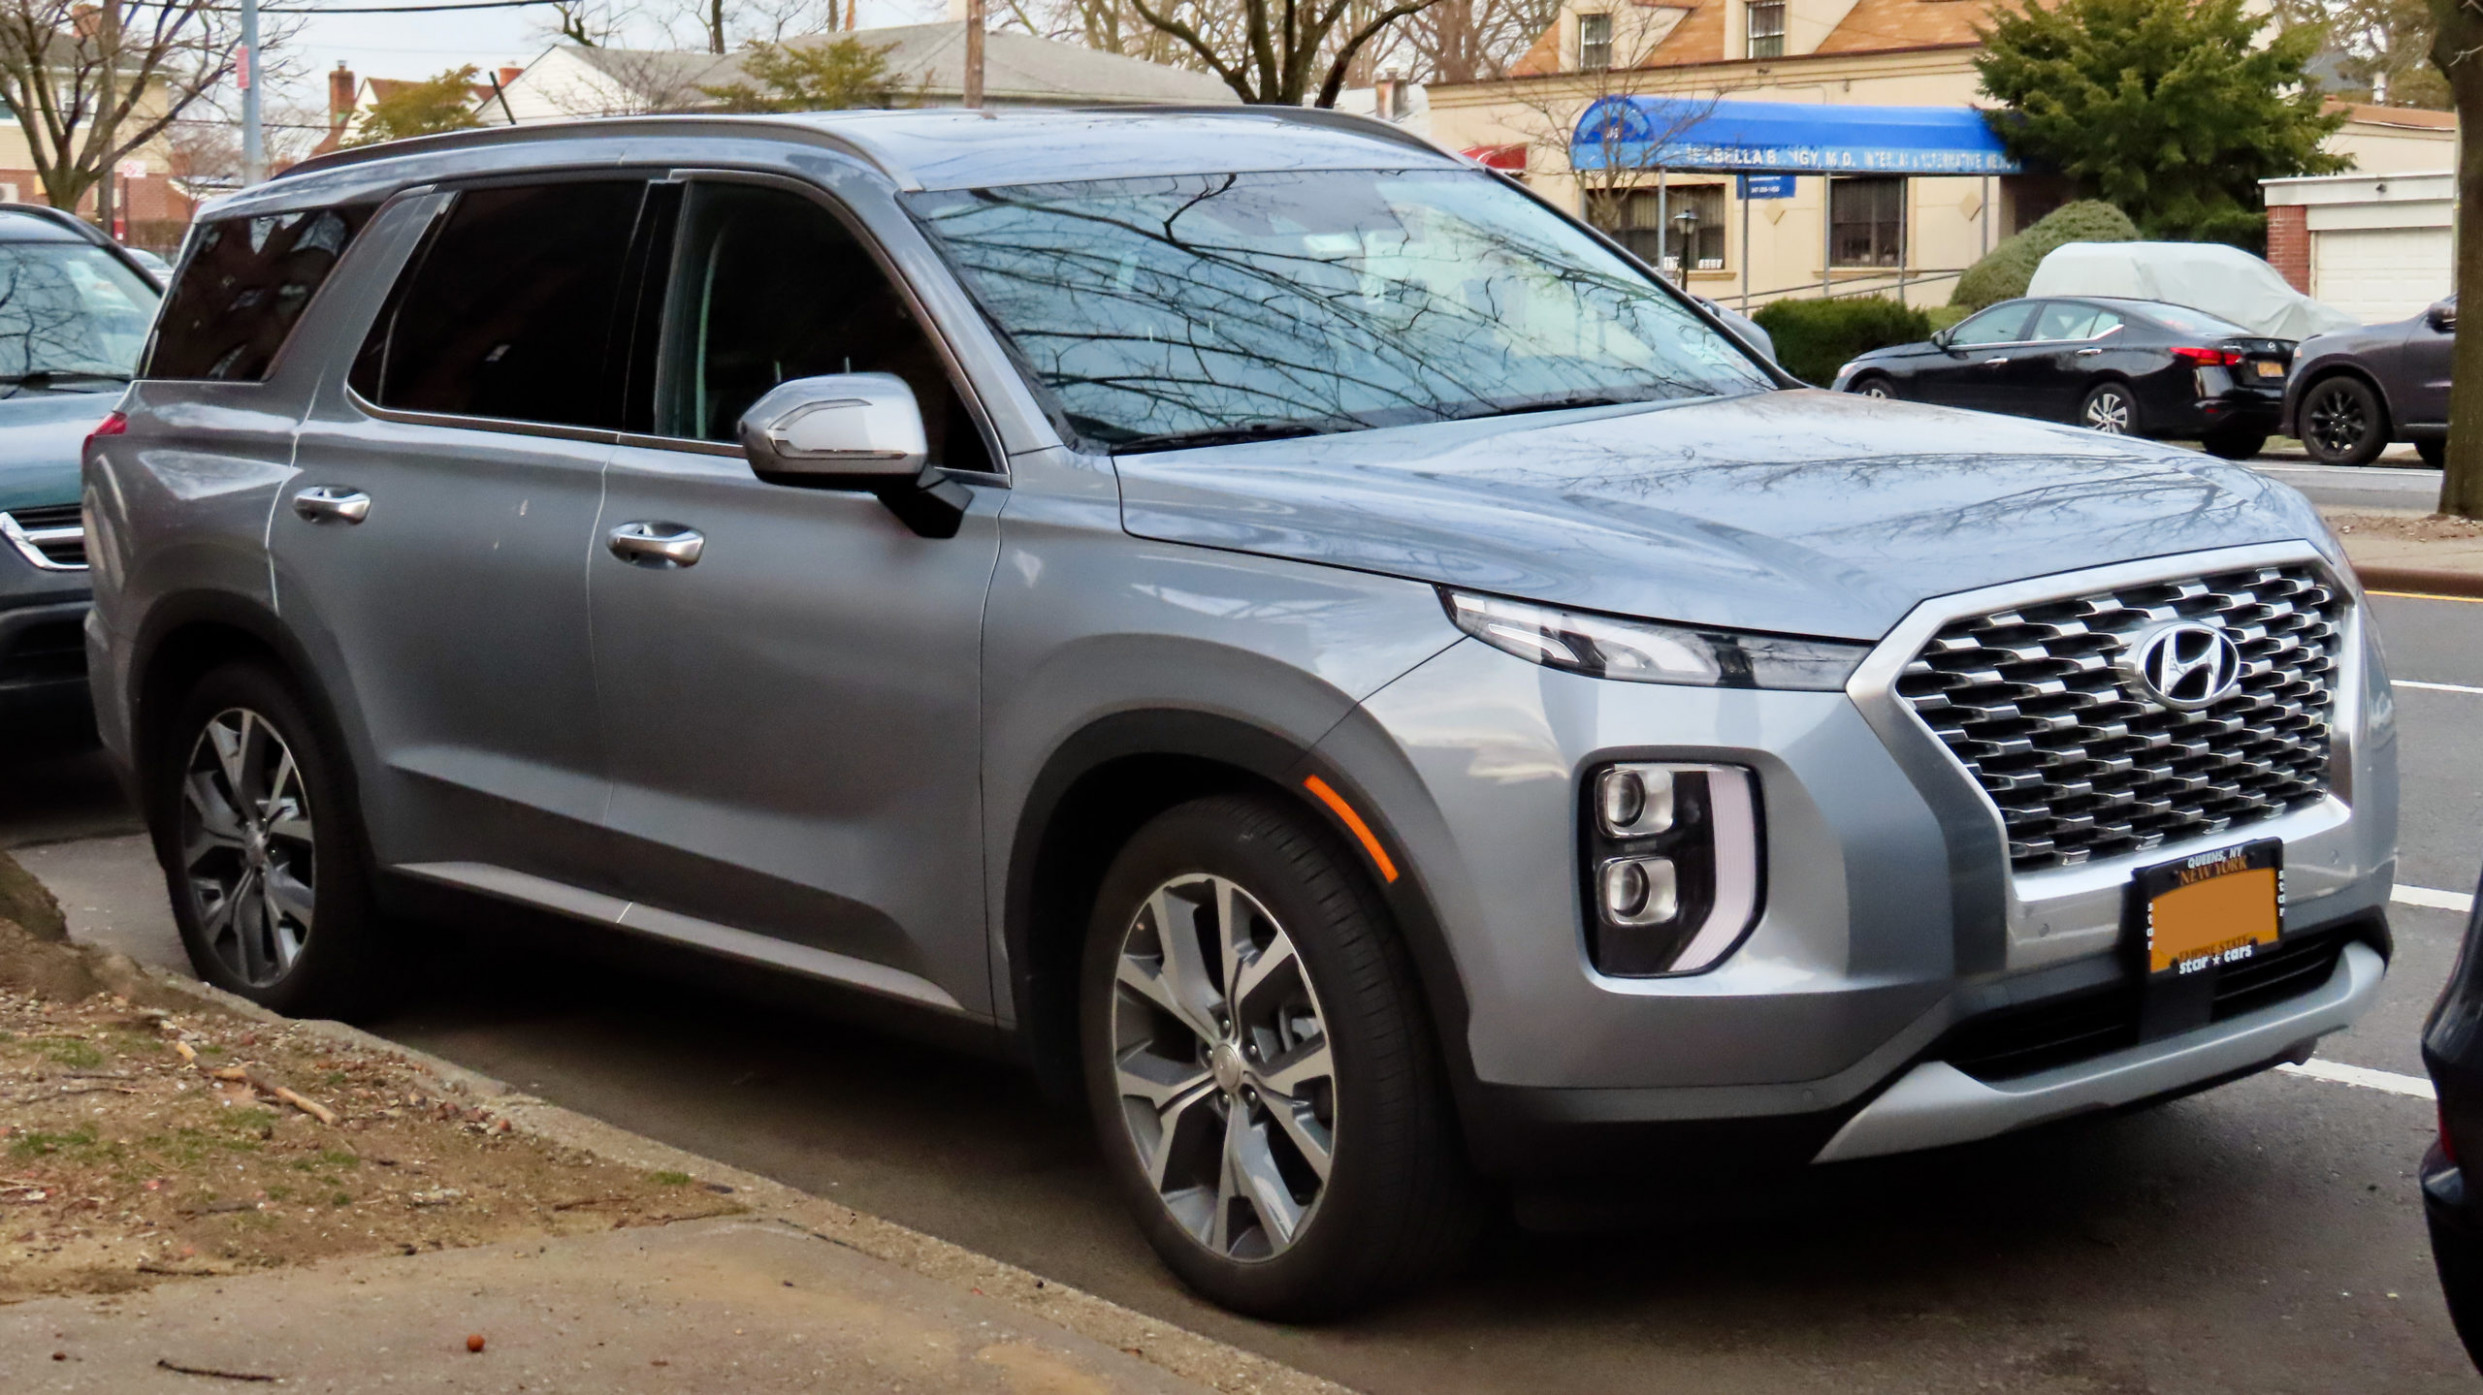 Rumors Price Of 2022 Hyundai Palisade